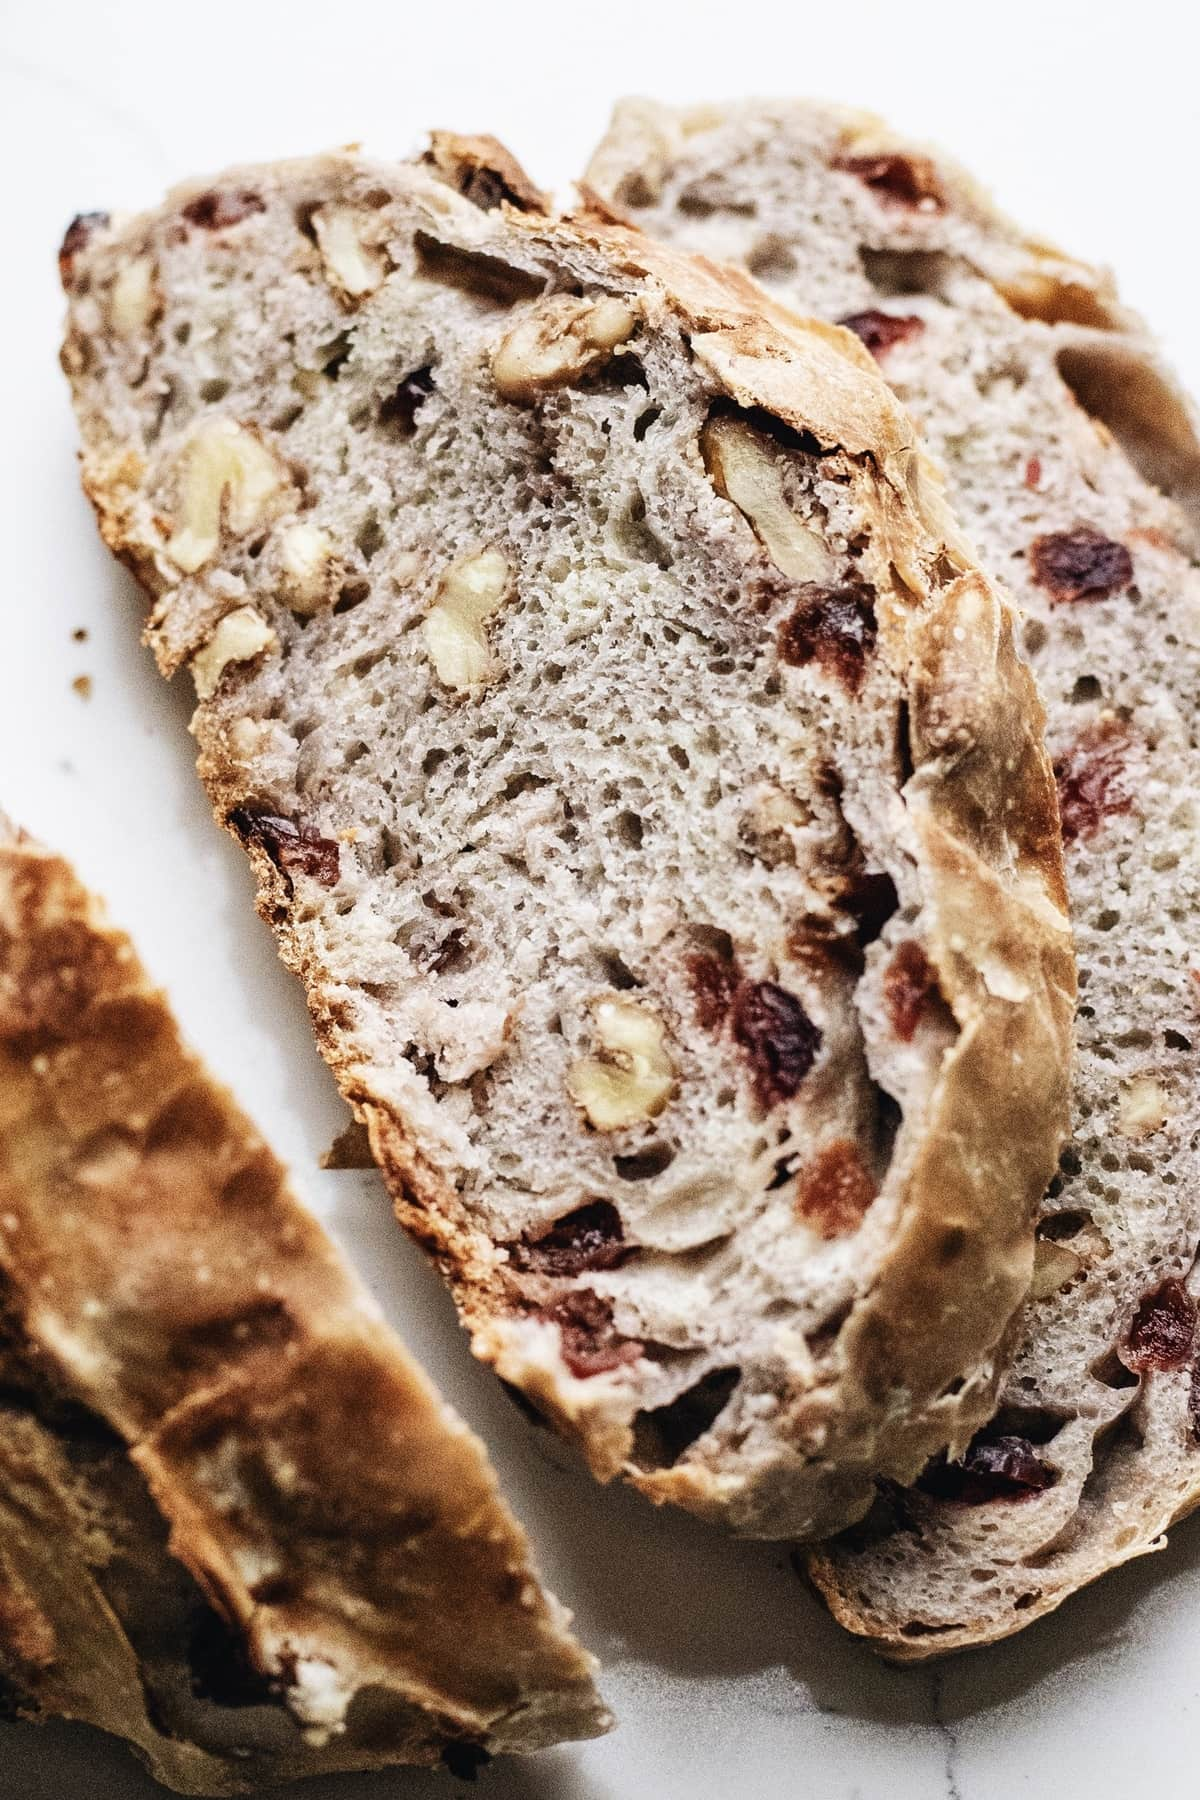 Slices of cranberry walnut bread.